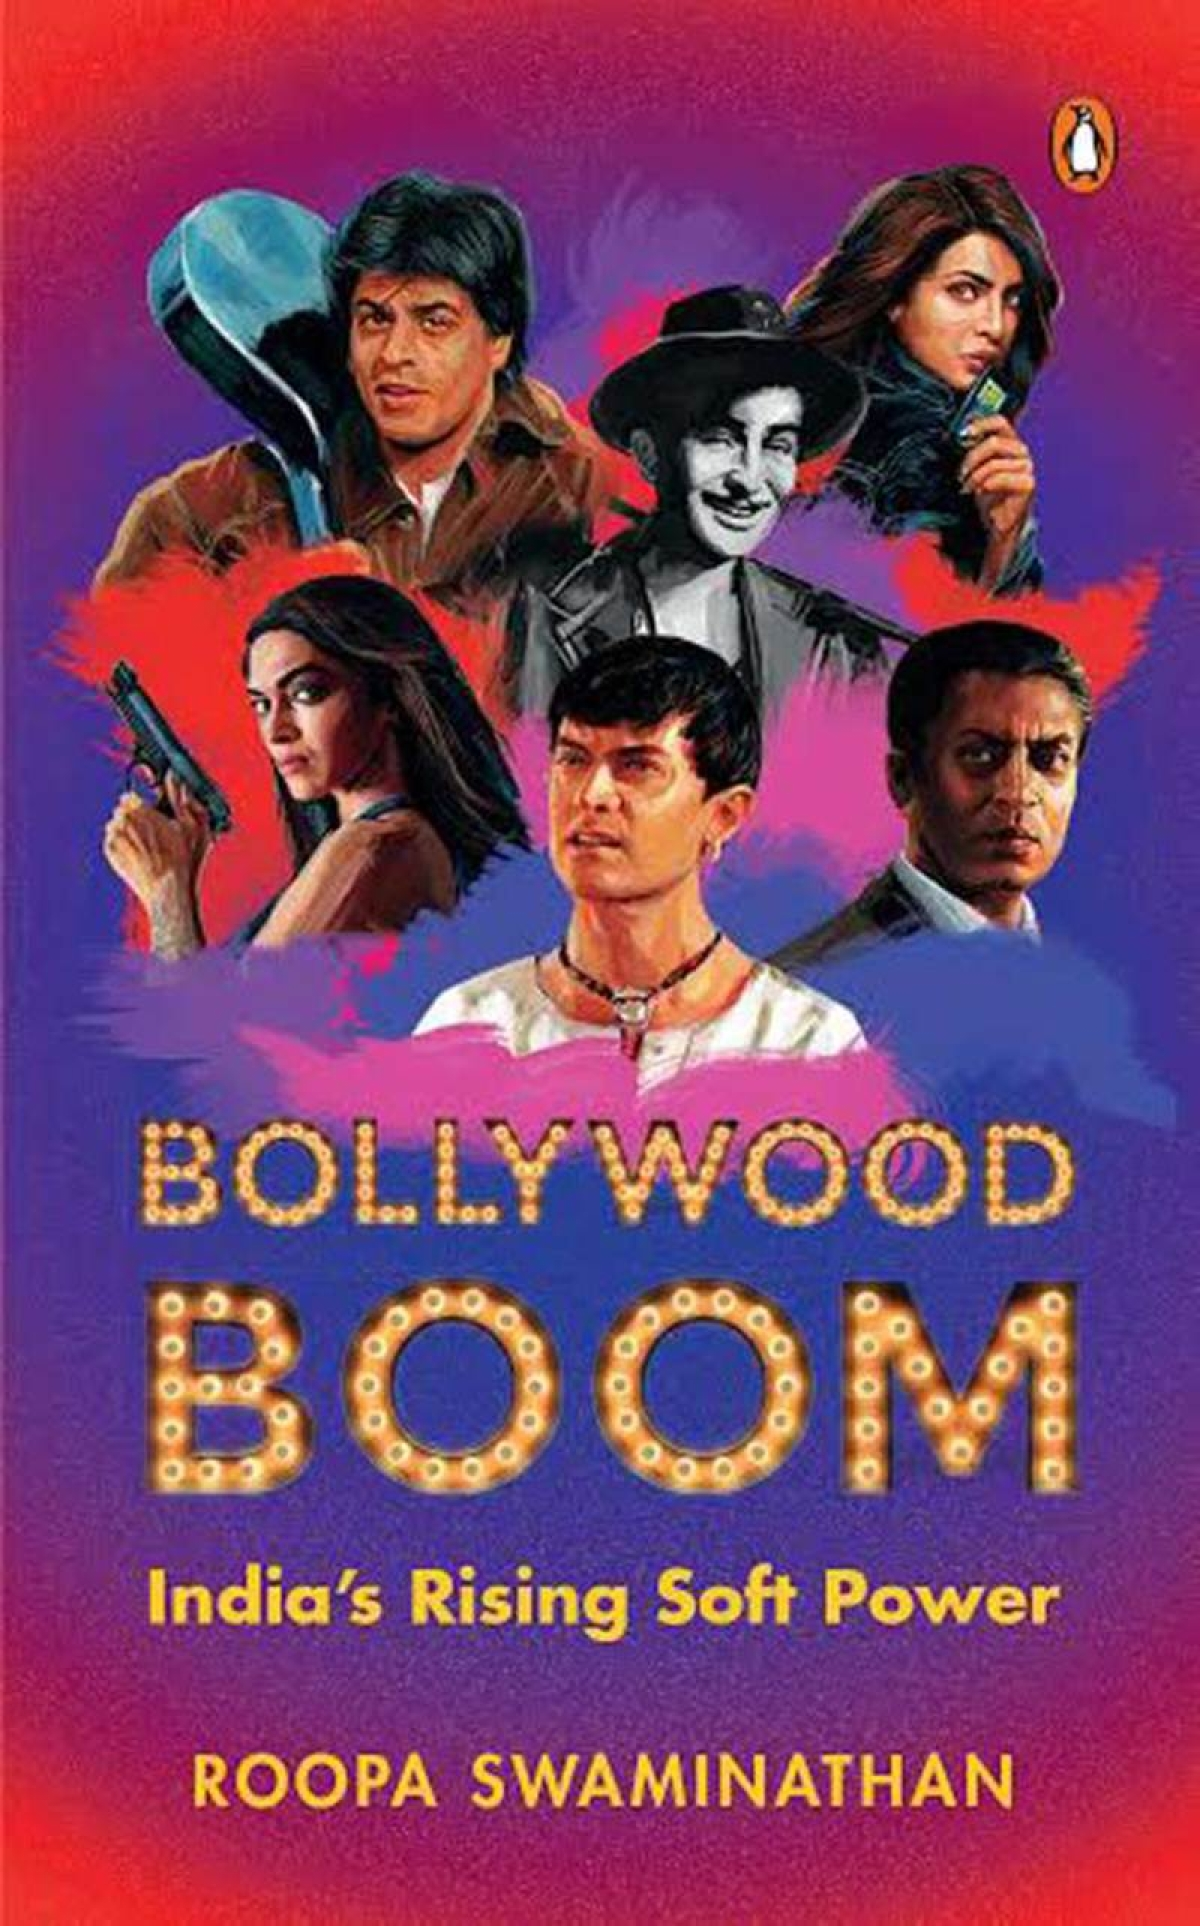 Bollywood Boom: India's Rising Soft Power- Review